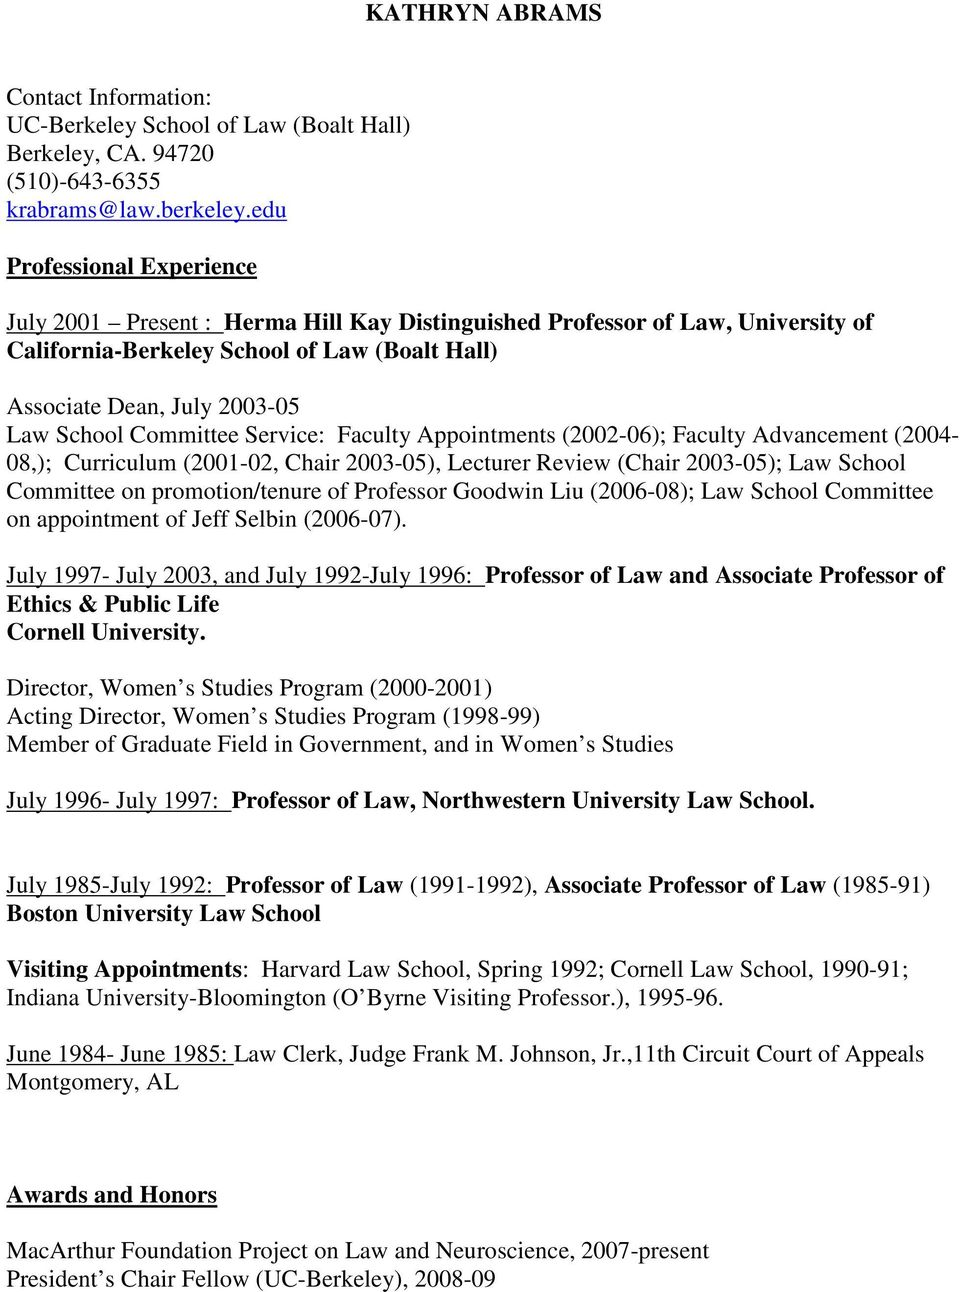 Committee Service: Faculty Appointments (2002-06); Faculty Advancement (2004-08,); Curriculum (2001-02, Chair 2003-05), Lecturer Review (Chair 2003-05); Law School Committee on promotion/tenure of